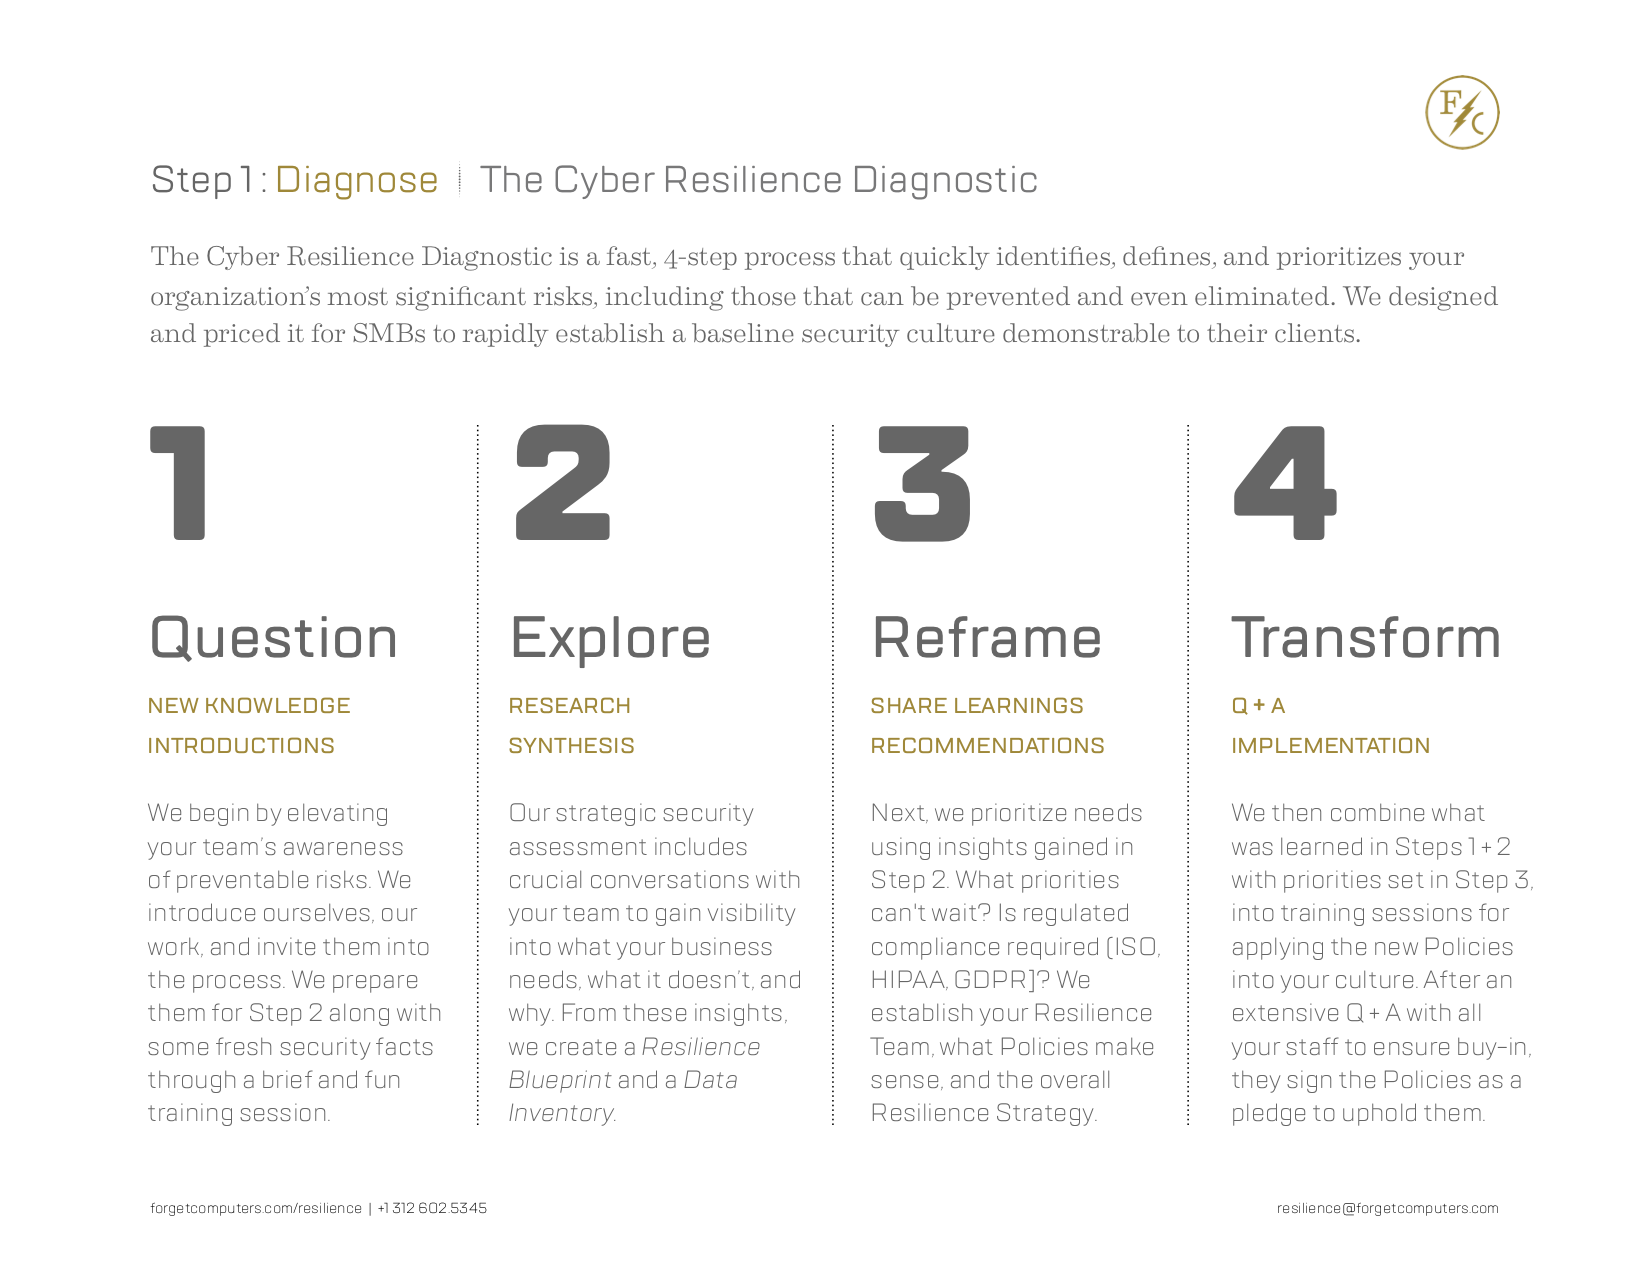 The Cyber Resilience Diagnostic requires a 40-60 hour commitment.